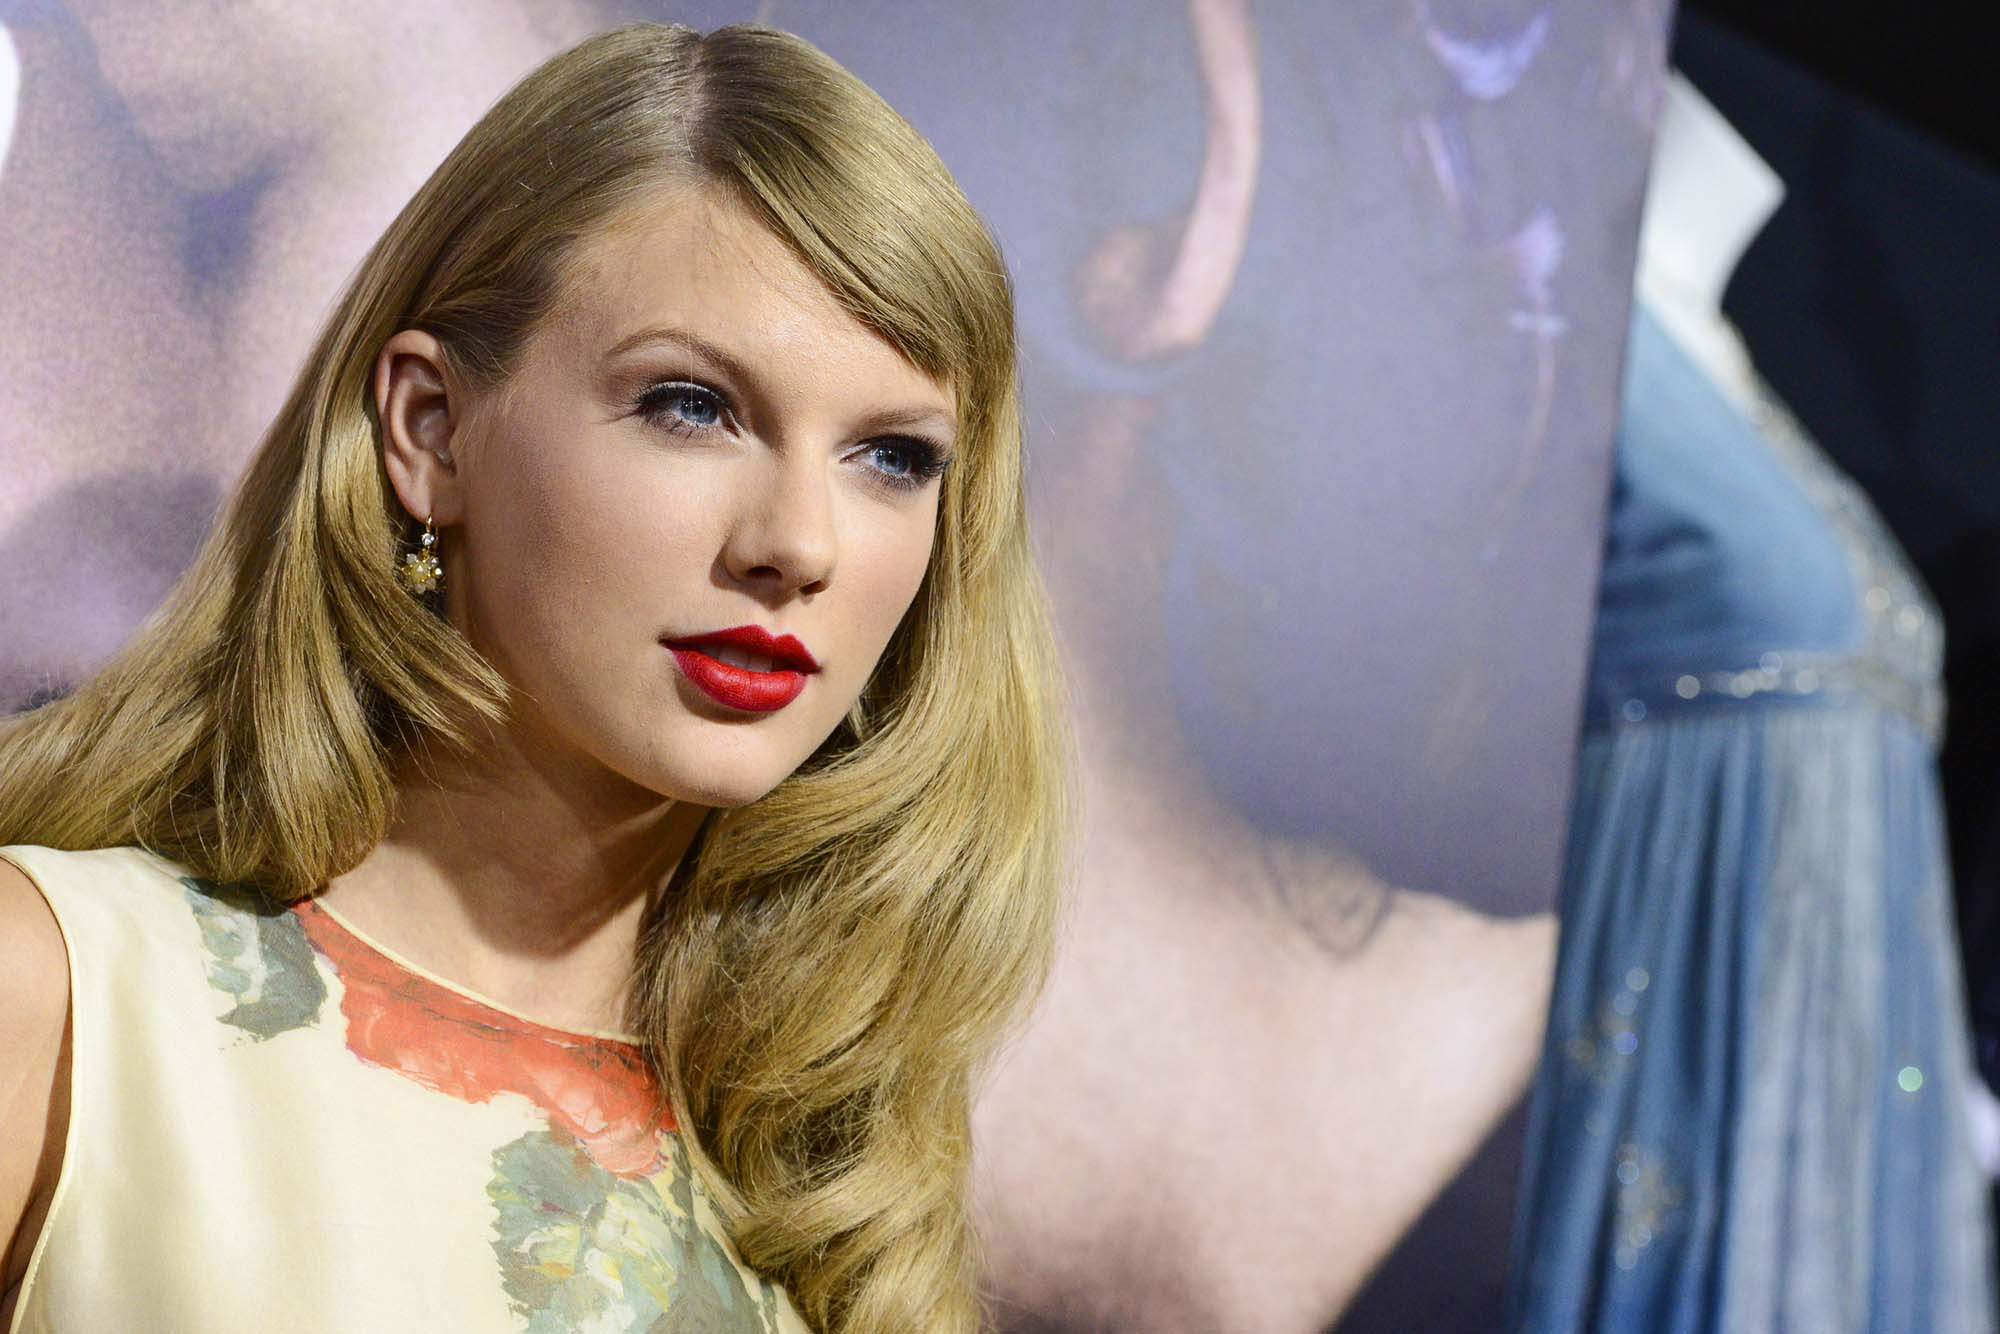 Pilot Dead In Crash Named Taylor Swift As Next Of Kin